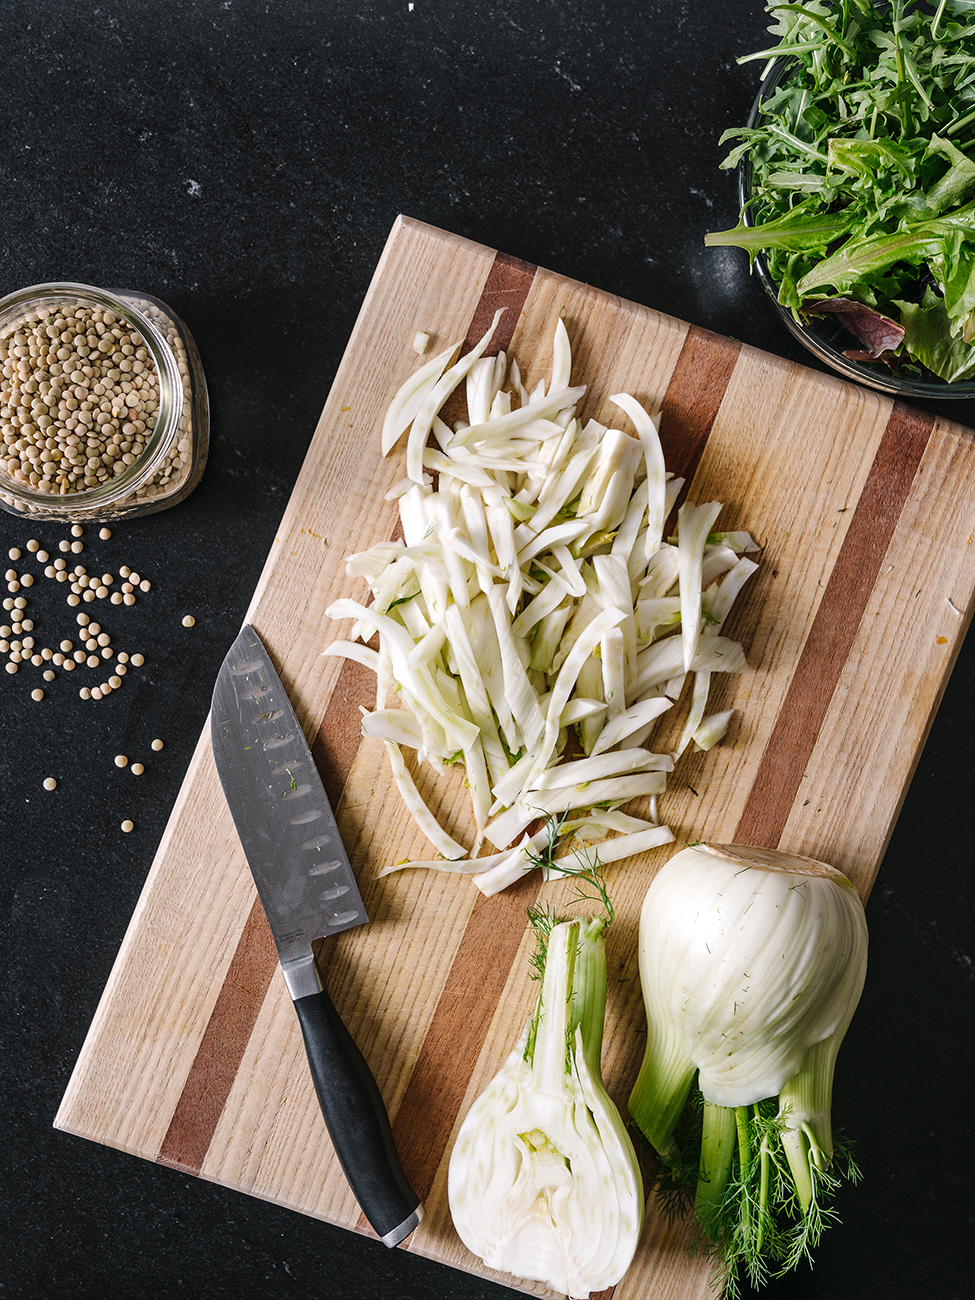 Sliced fennel on a chopping board